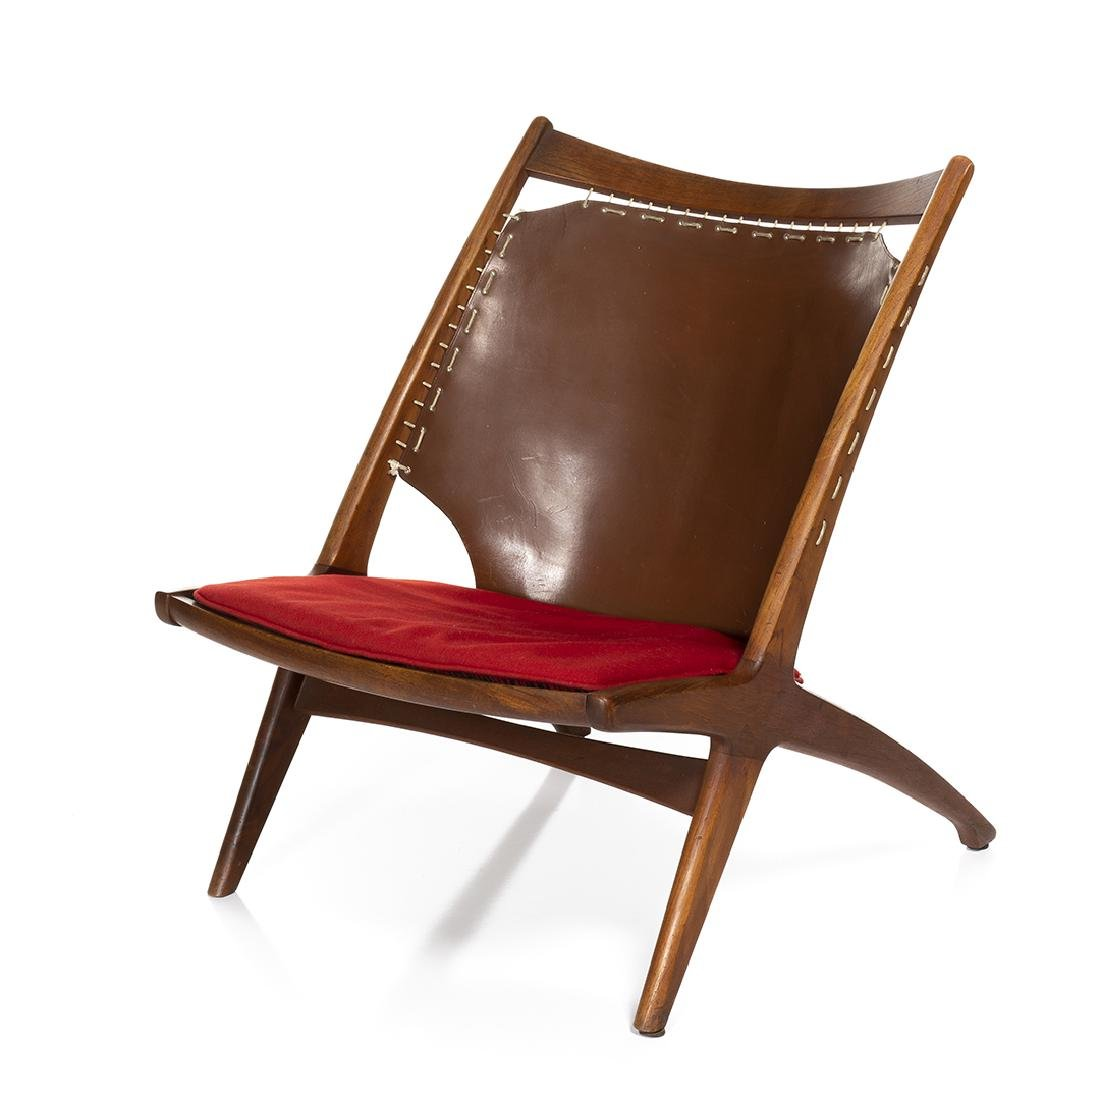 Fredrik Kayser and Adolf Relling Cross Lounge Chair